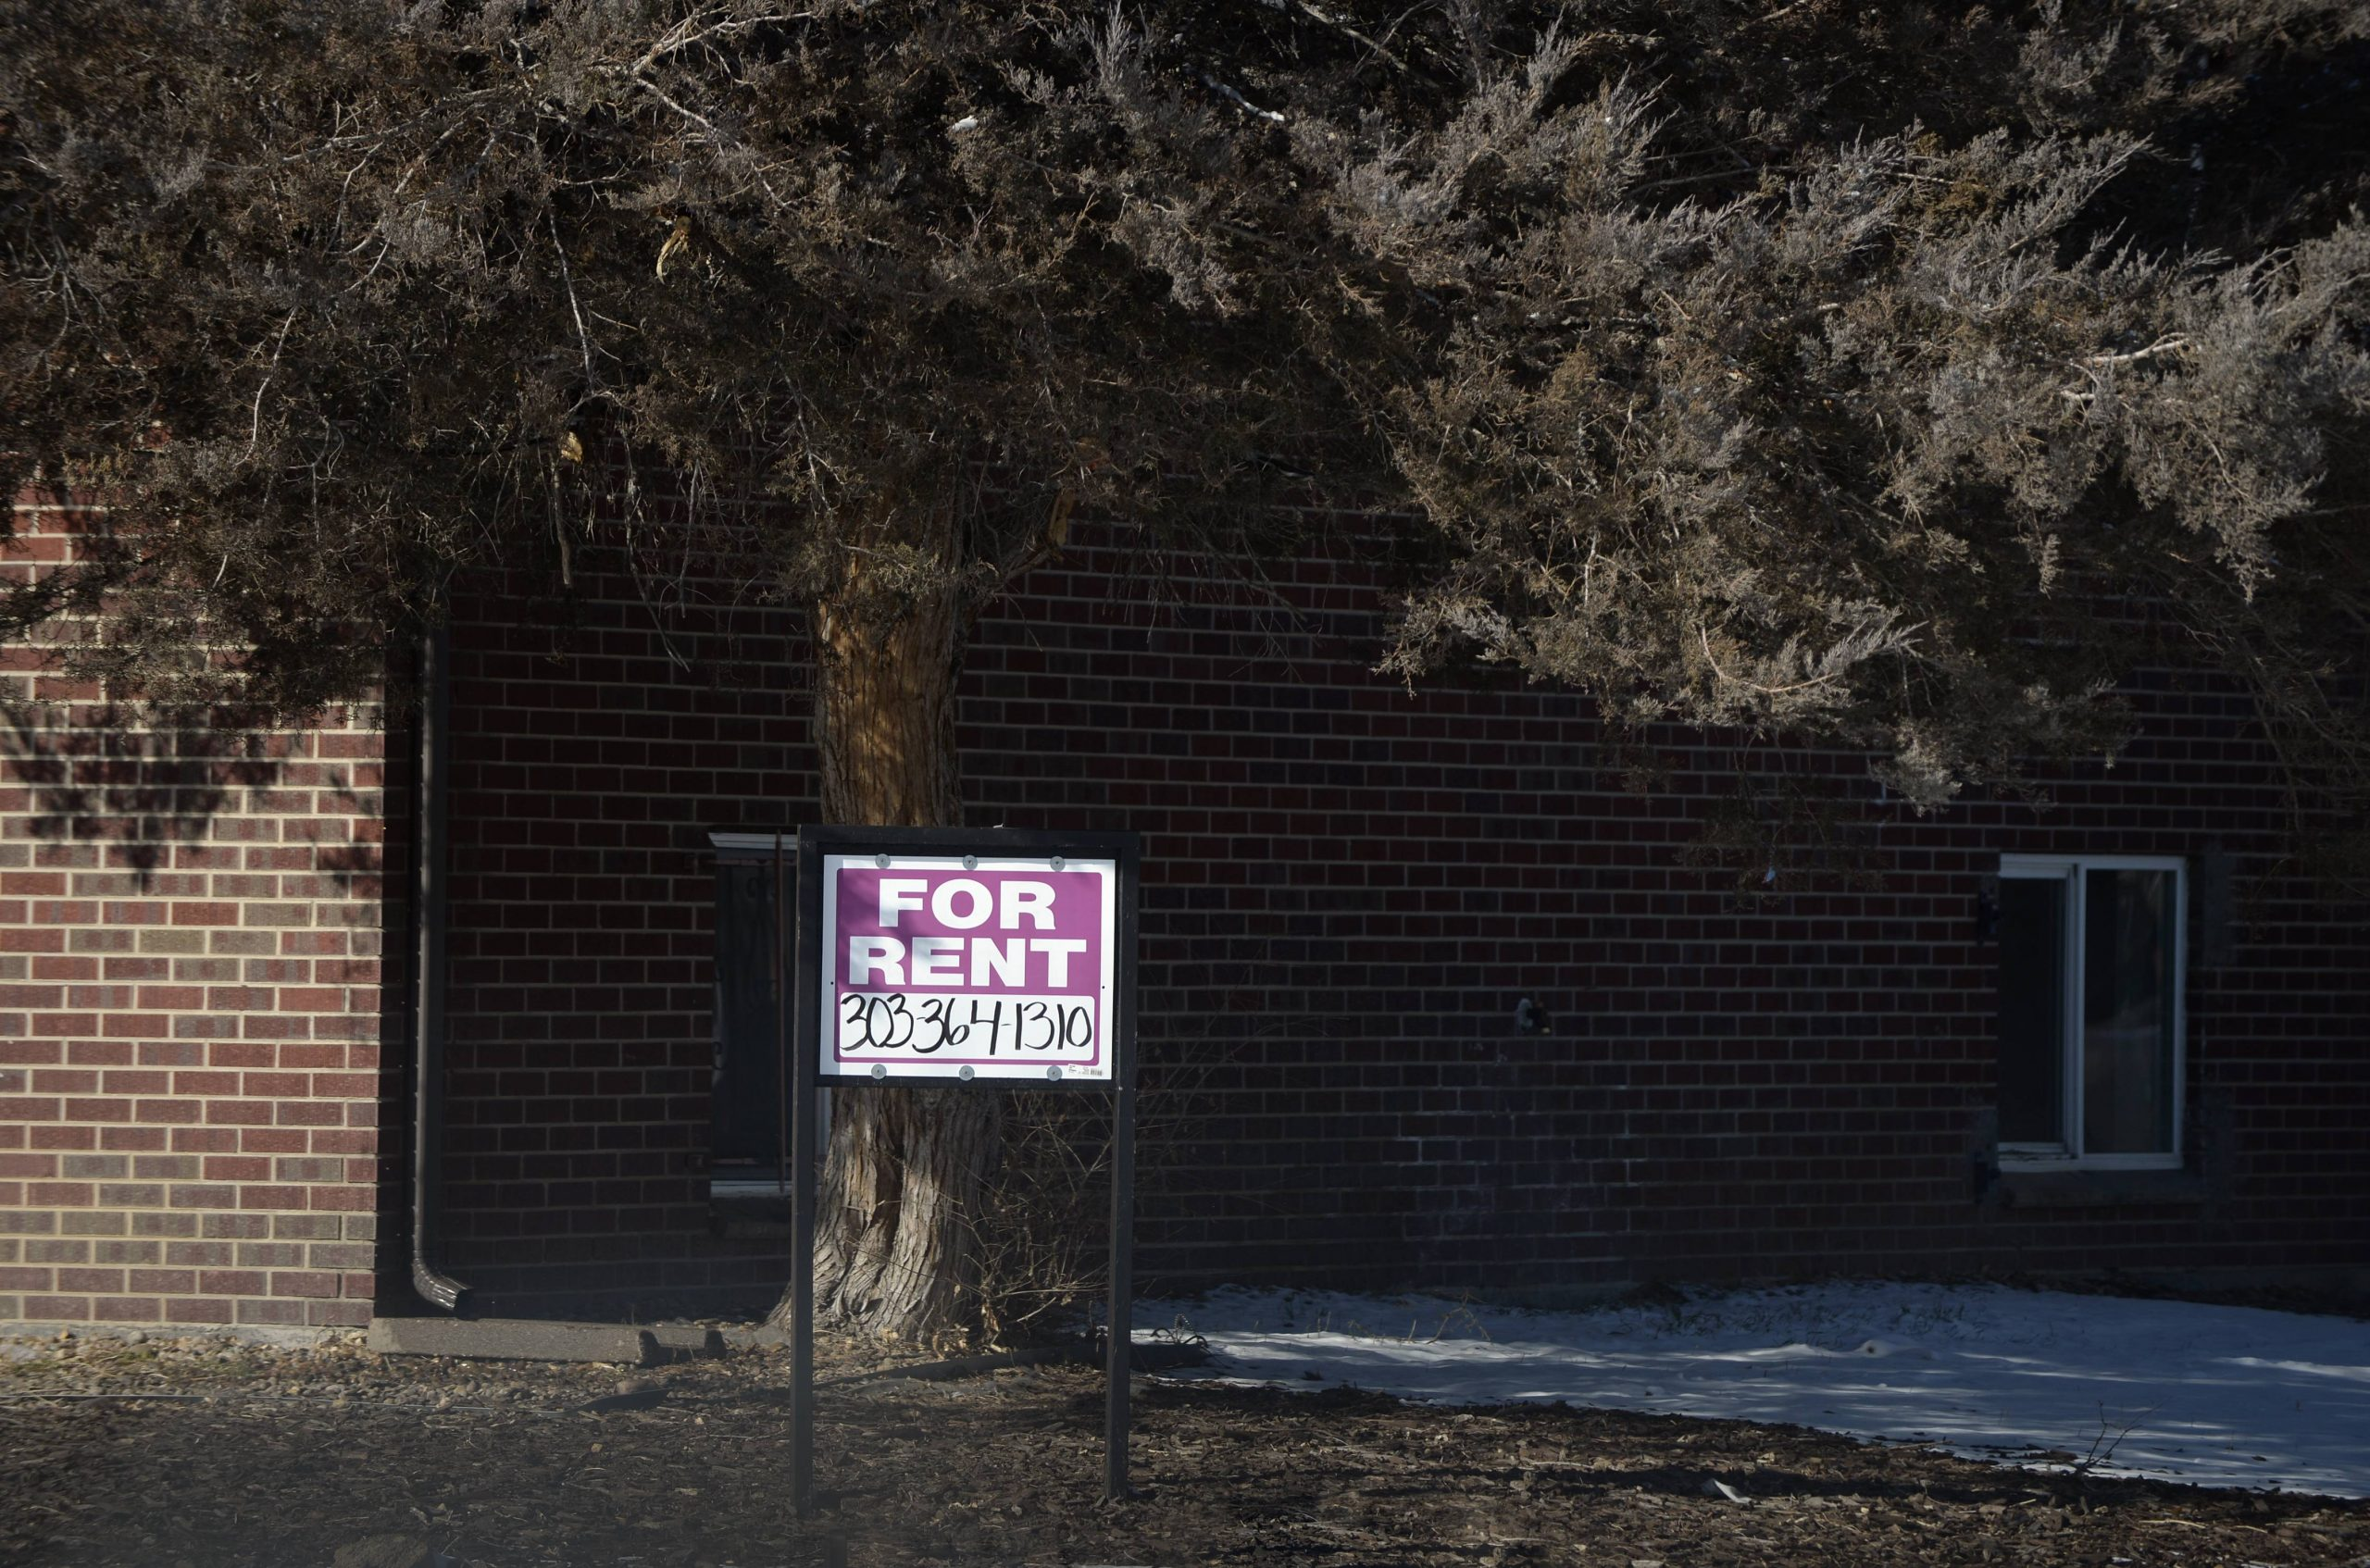 As the cost of Colorado housing increases, so does homelessness